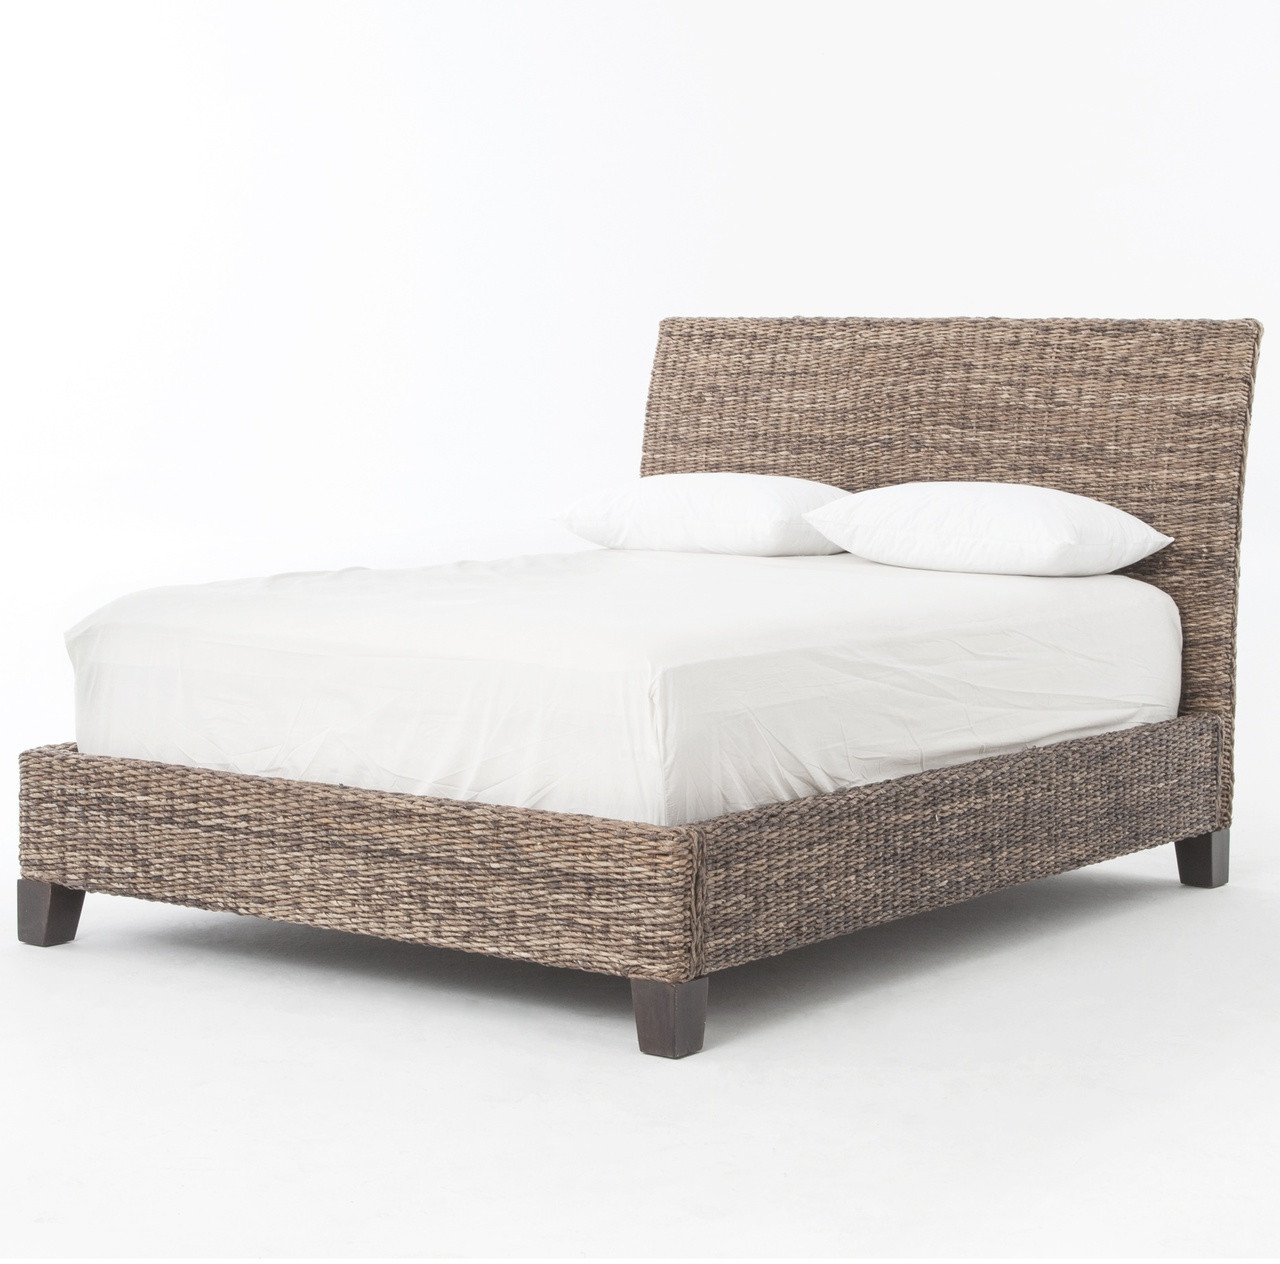 Banana leaf woven king platform bed gray